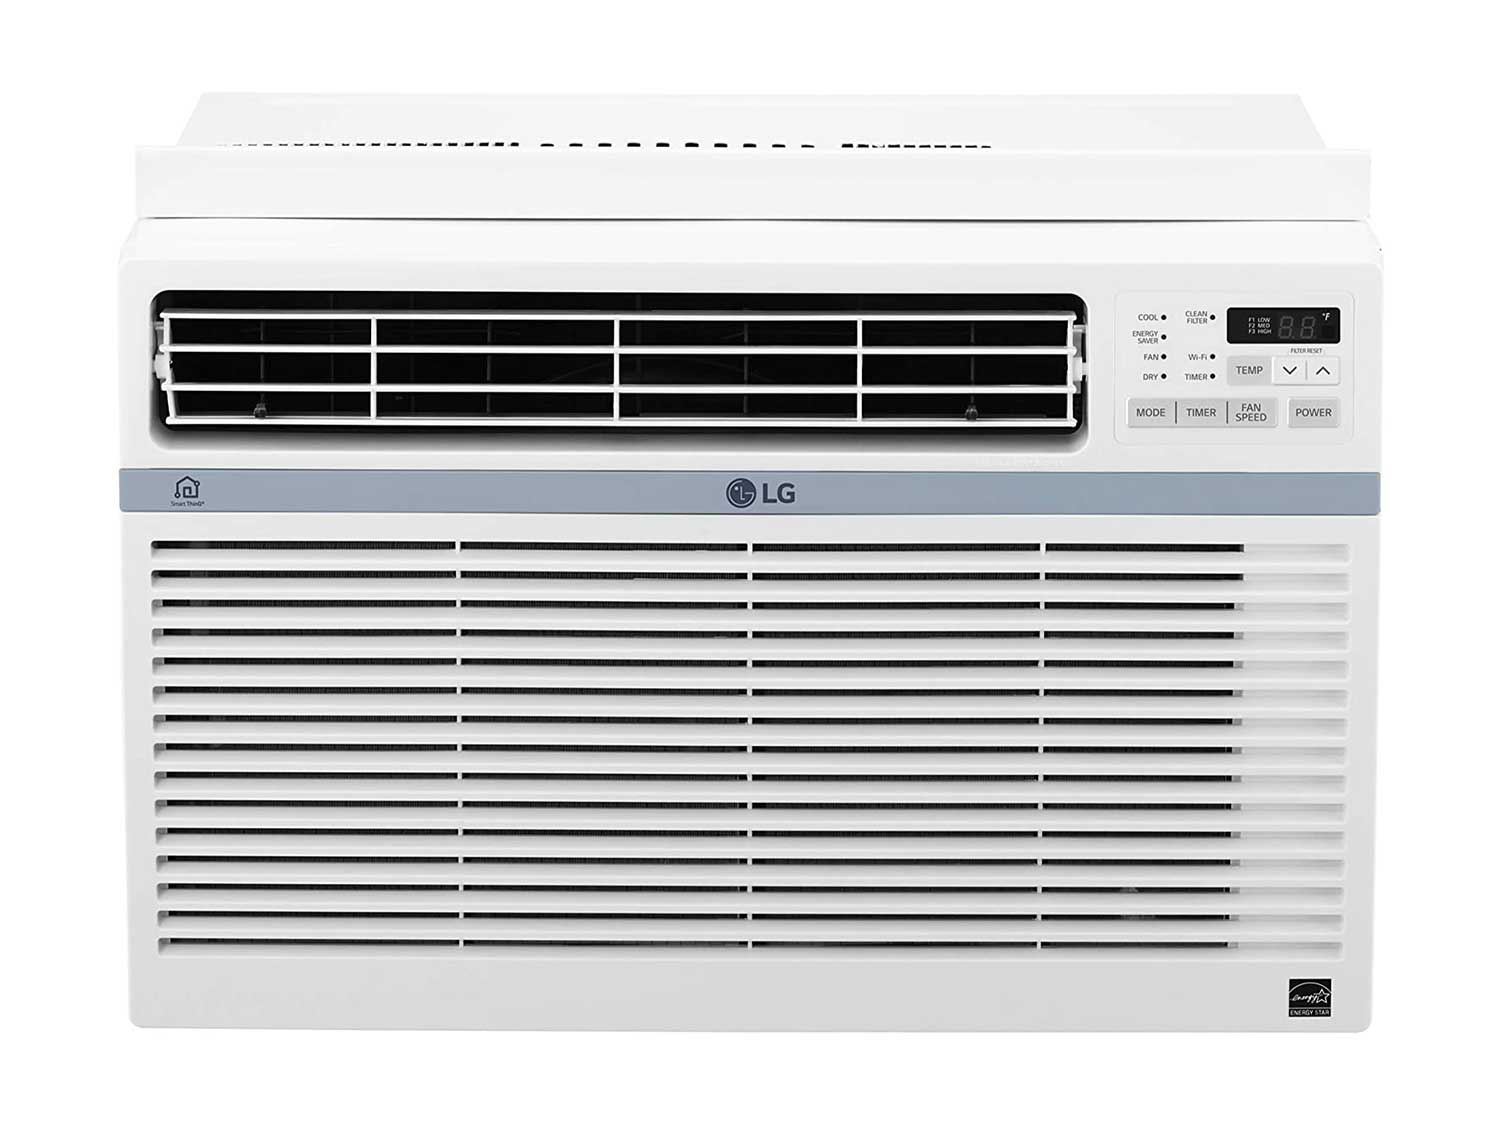 LG LW1017ERSM Energy Star 10,000 BTU Window Wi-Fi Air Conditioner, White